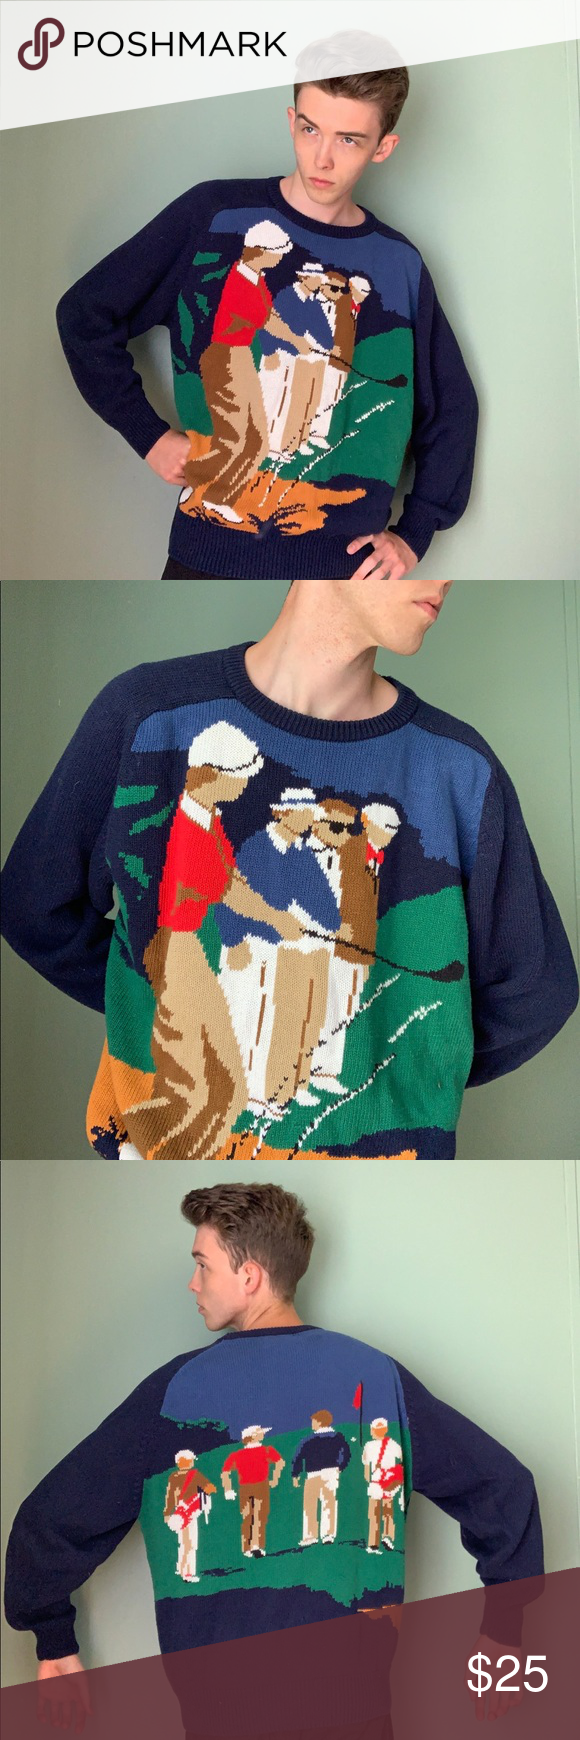 Sold Vintage sweaters, Golf sweaters, Sweaters crewneck